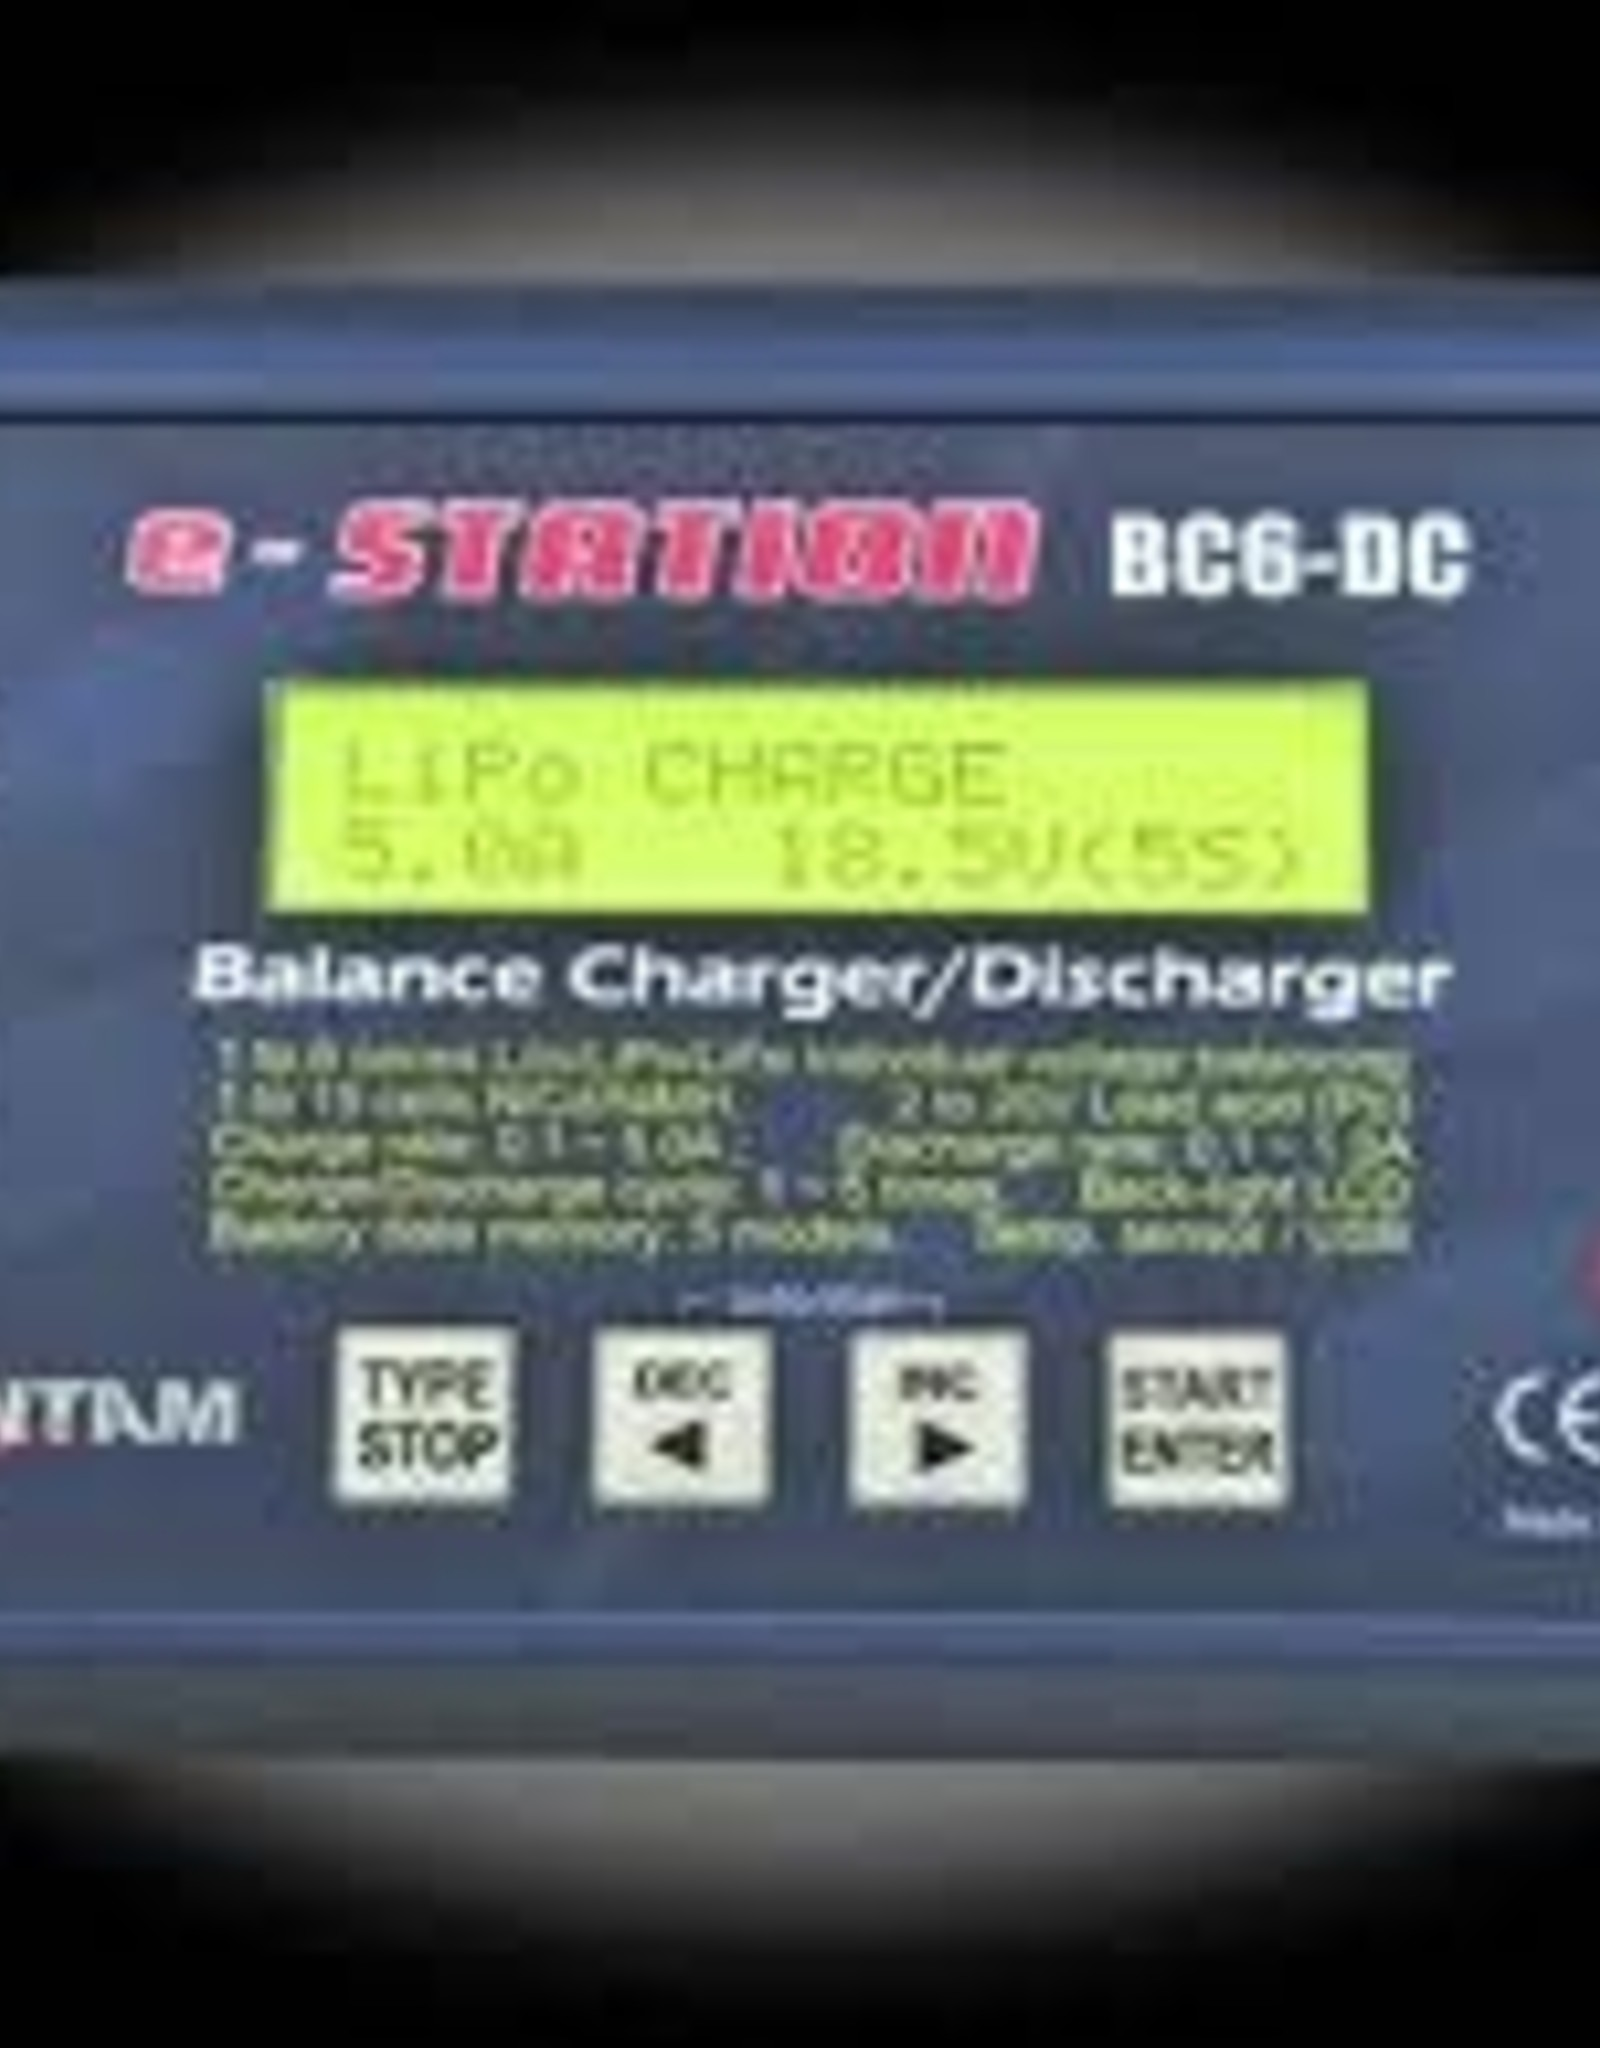 Common Sense Rc Bantam e-Station charger